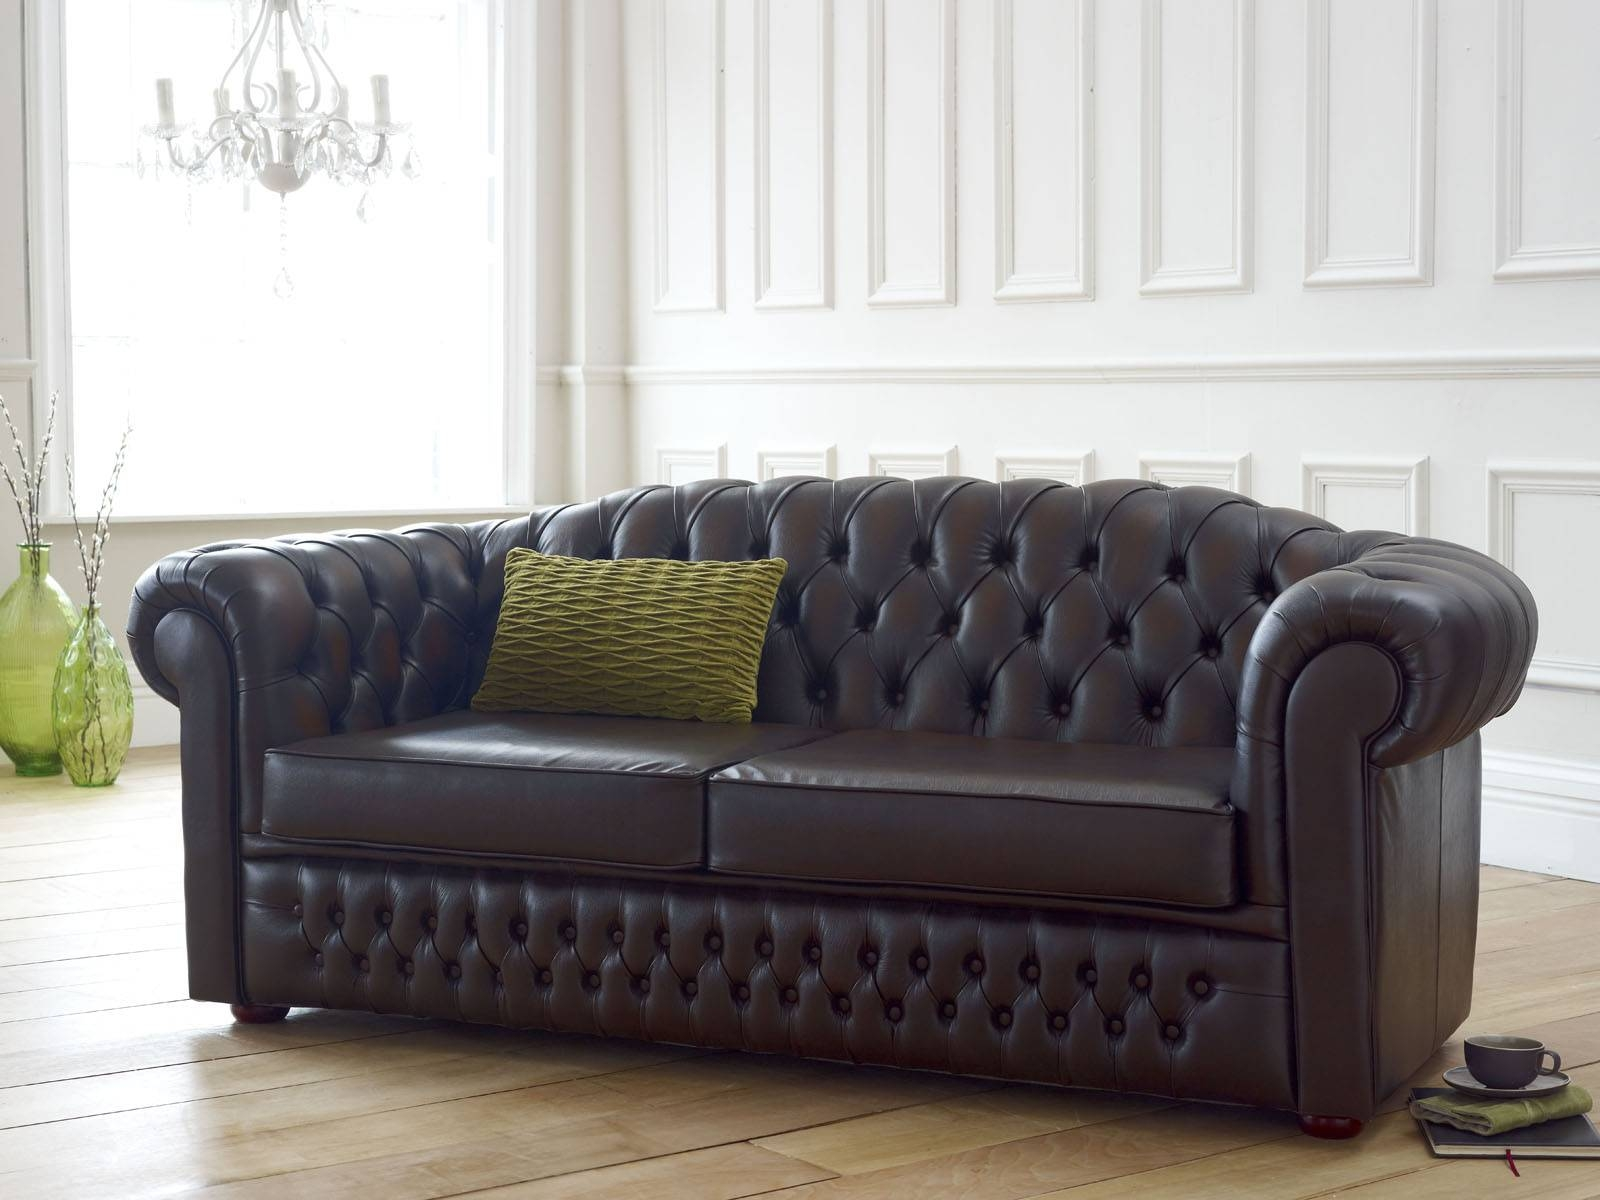 Sofas Center : Additional Most Comfortable Sofa For Small Home pertaining to Most Comfortable Sofabed (Image 25 of 30)